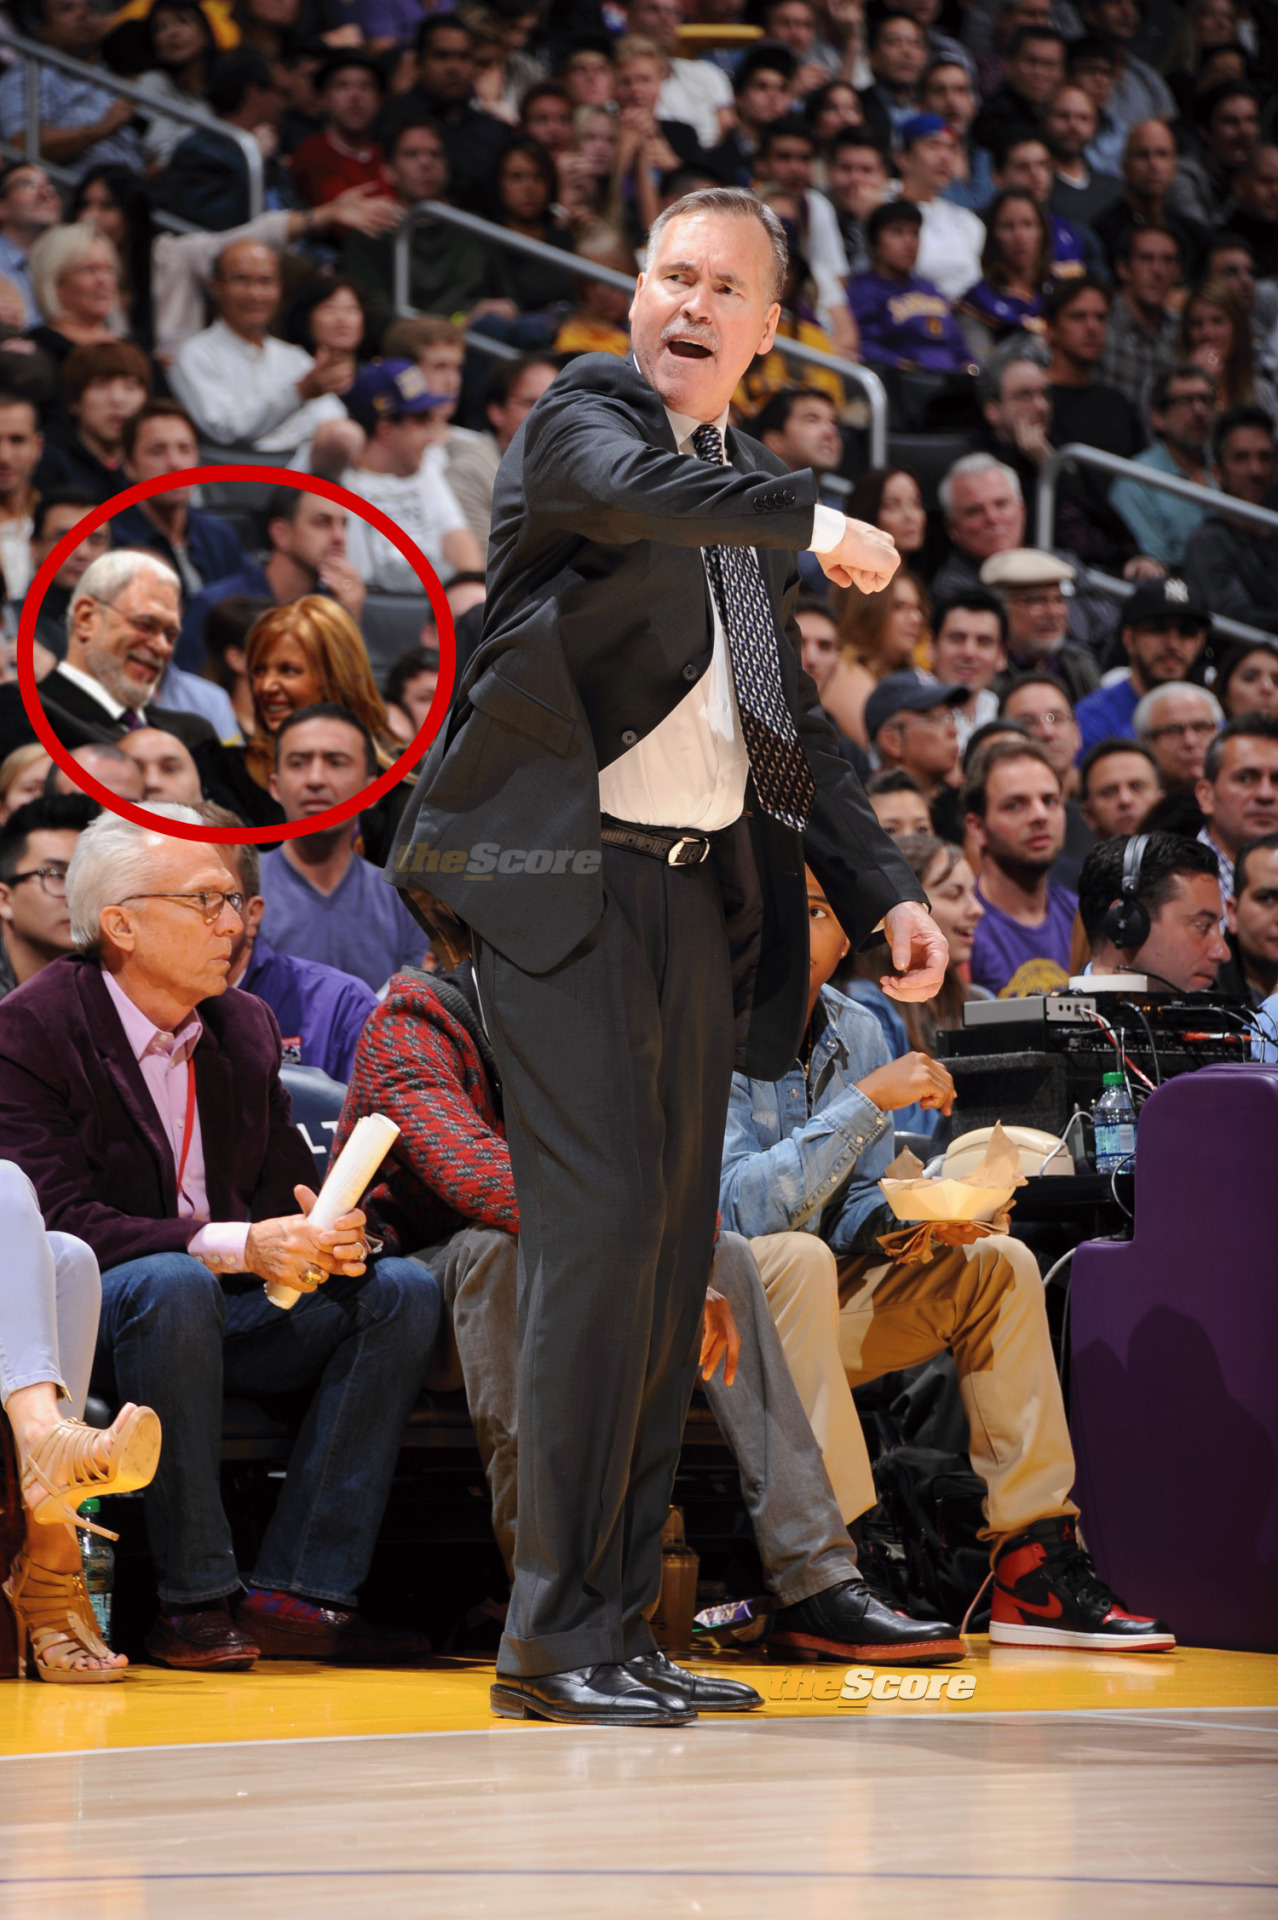 Pic: Watching the Lakers would make anyone laugh.